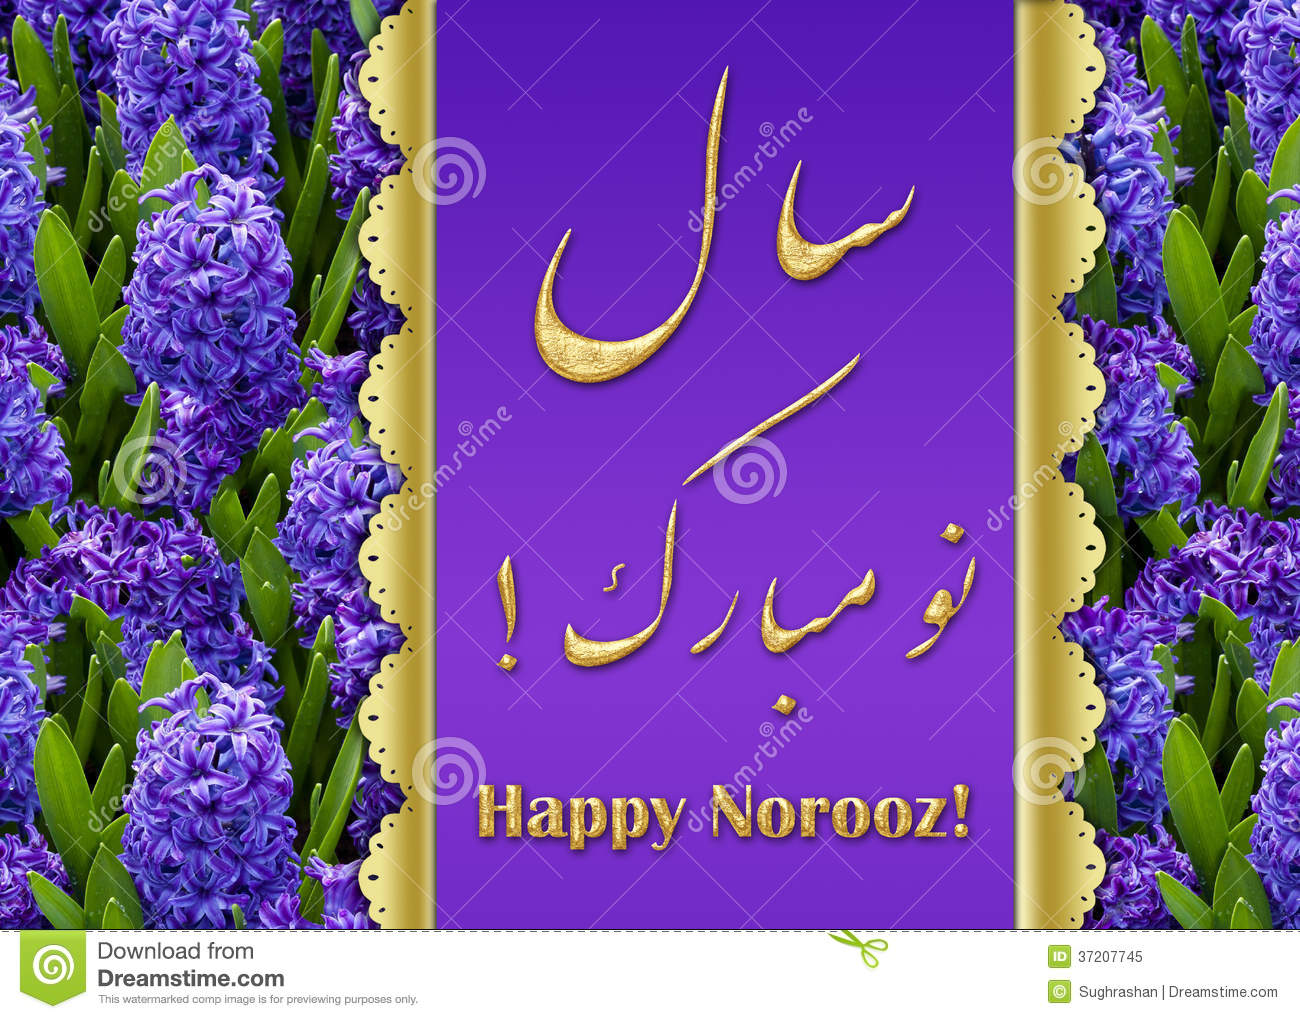 Iranian new year greetings happy nowruz message in farsi language elegant happy norooz hyacinths royalty free stock photo kristyandbryce Gallery